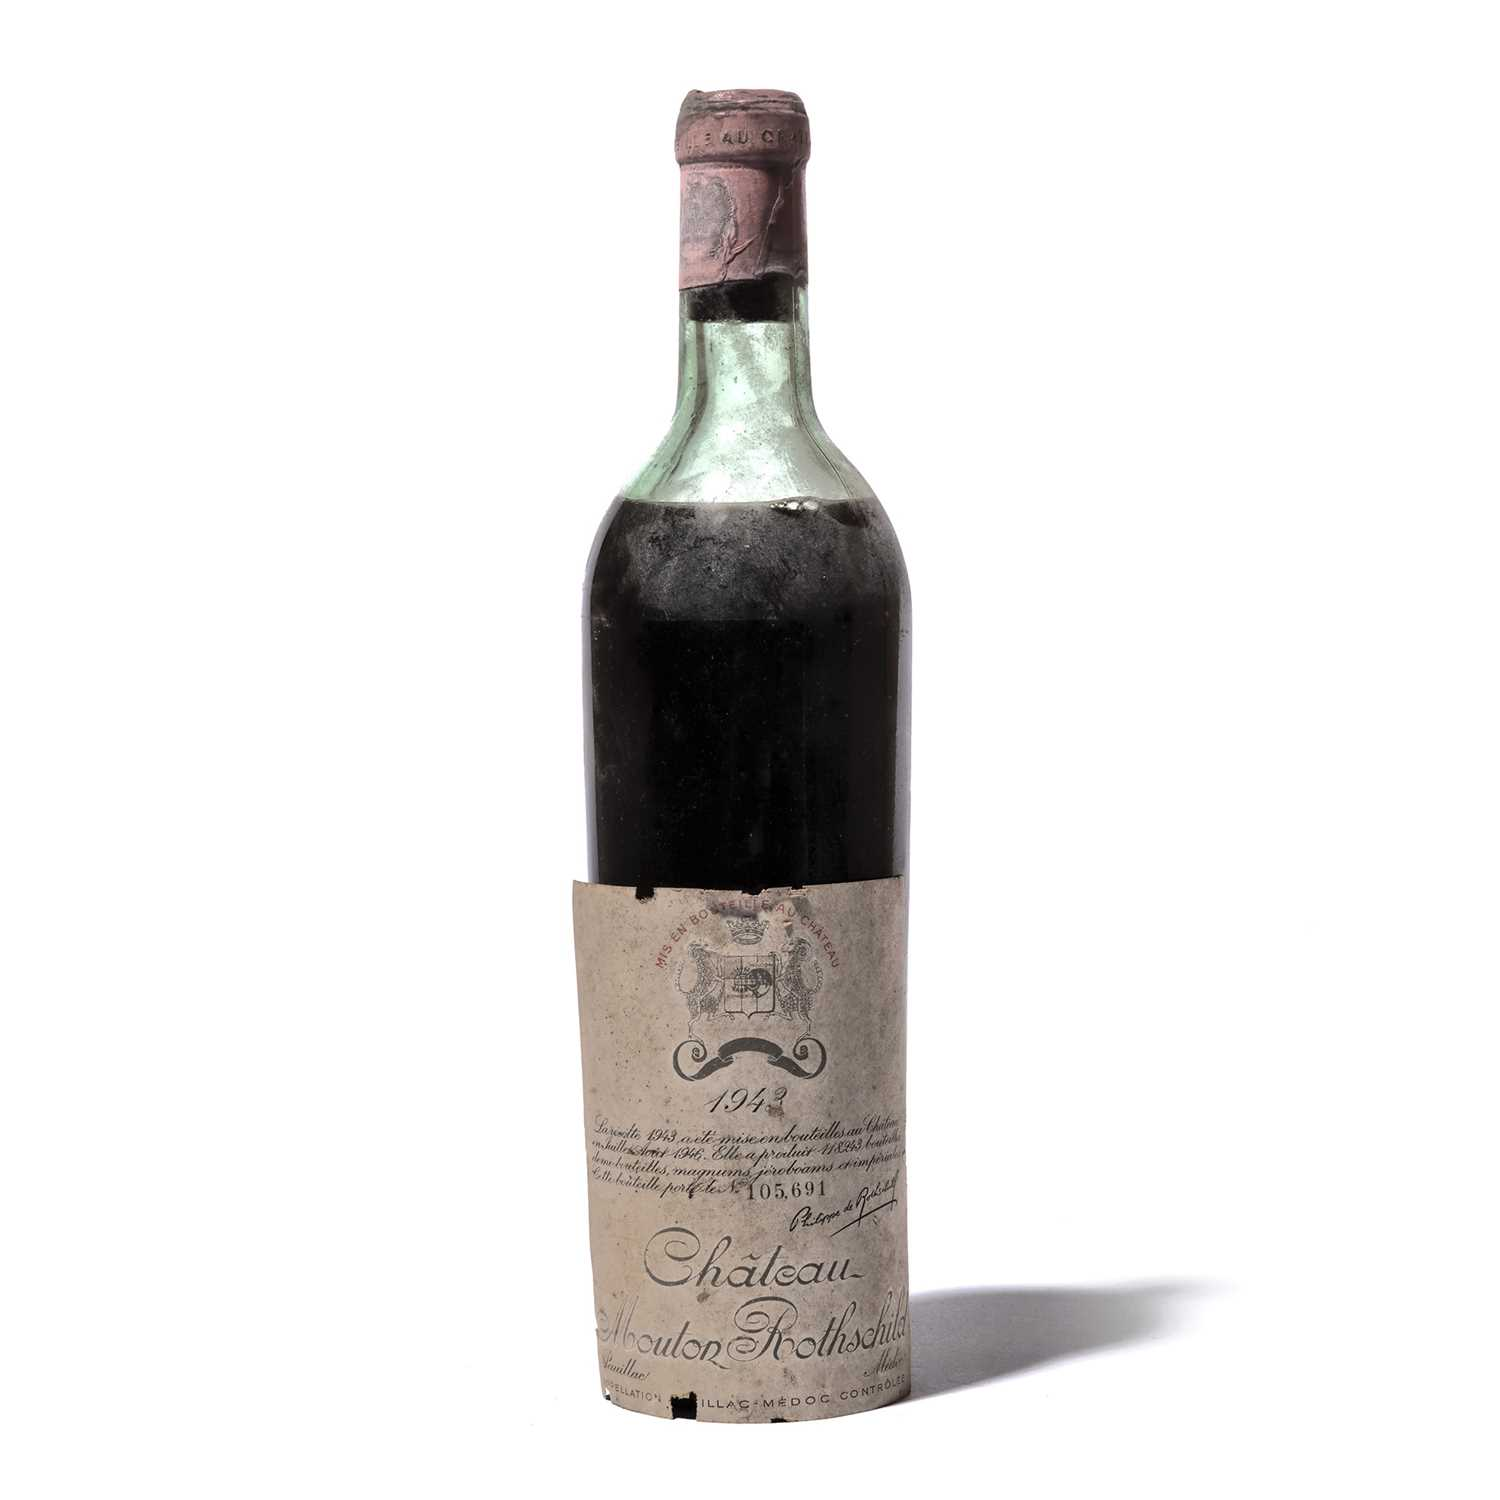 Lot 27-1 bottle 1943 Ch Mouton-Rothschild